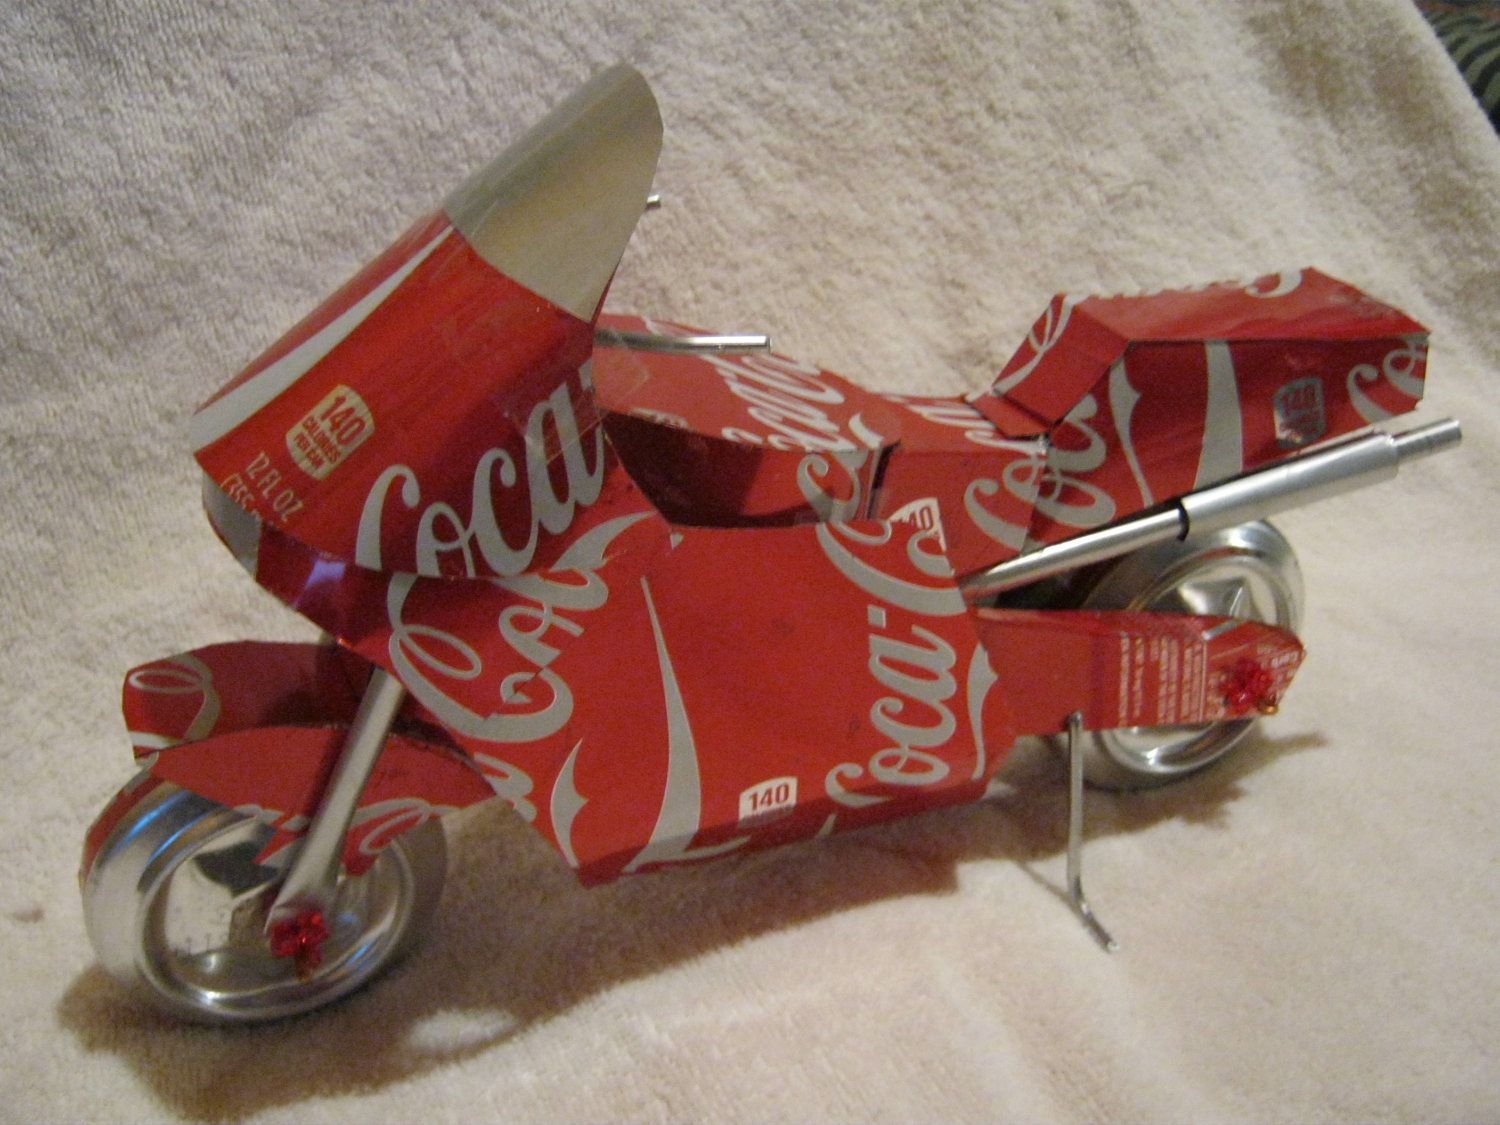 Can art artistic views pinterest coca cola can - Recycled can art projects ...